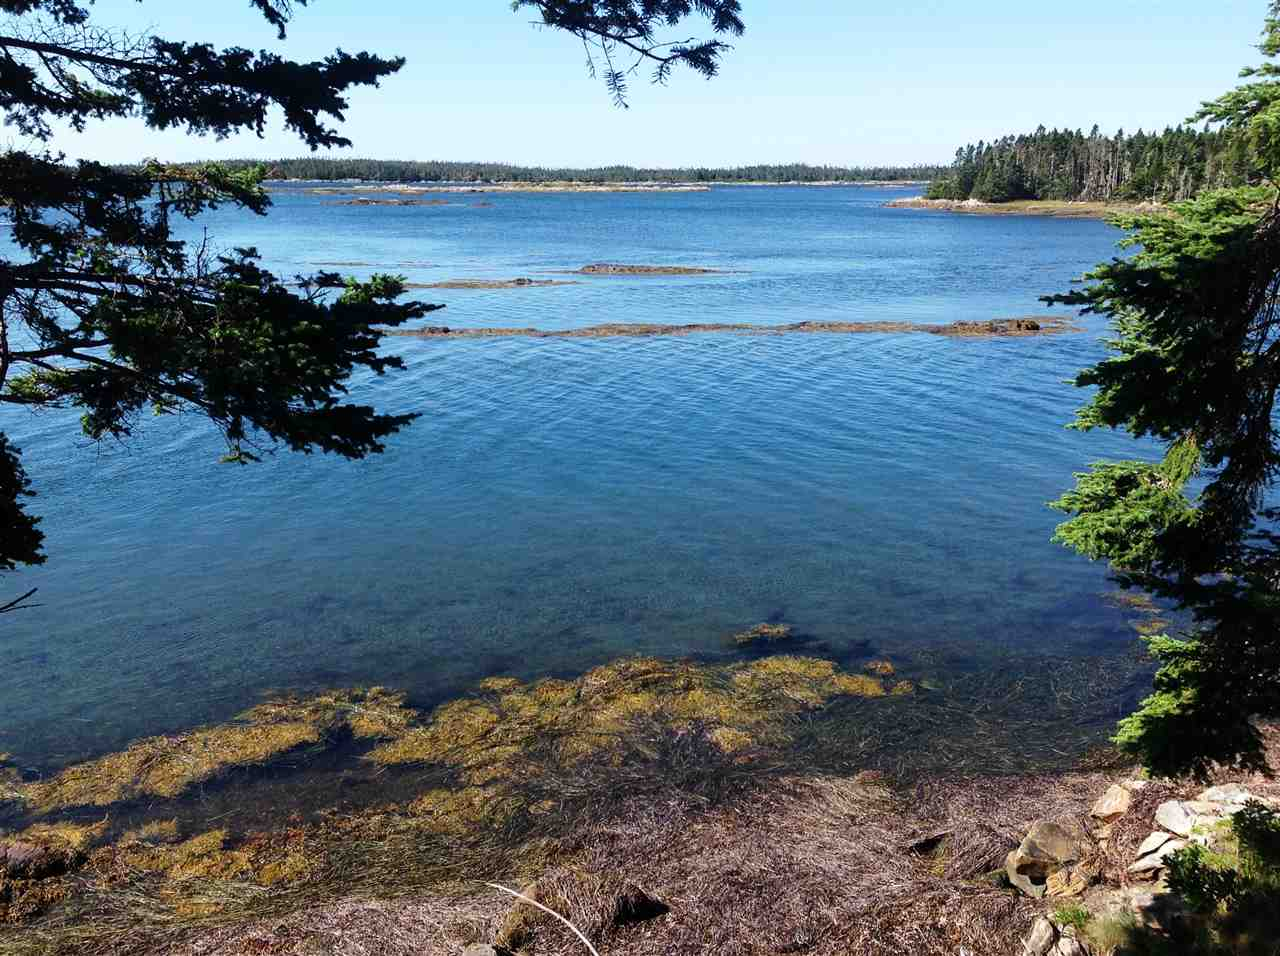 Lot 100 Tumblin Road, Lahave Islands Nova Scotia, Canada